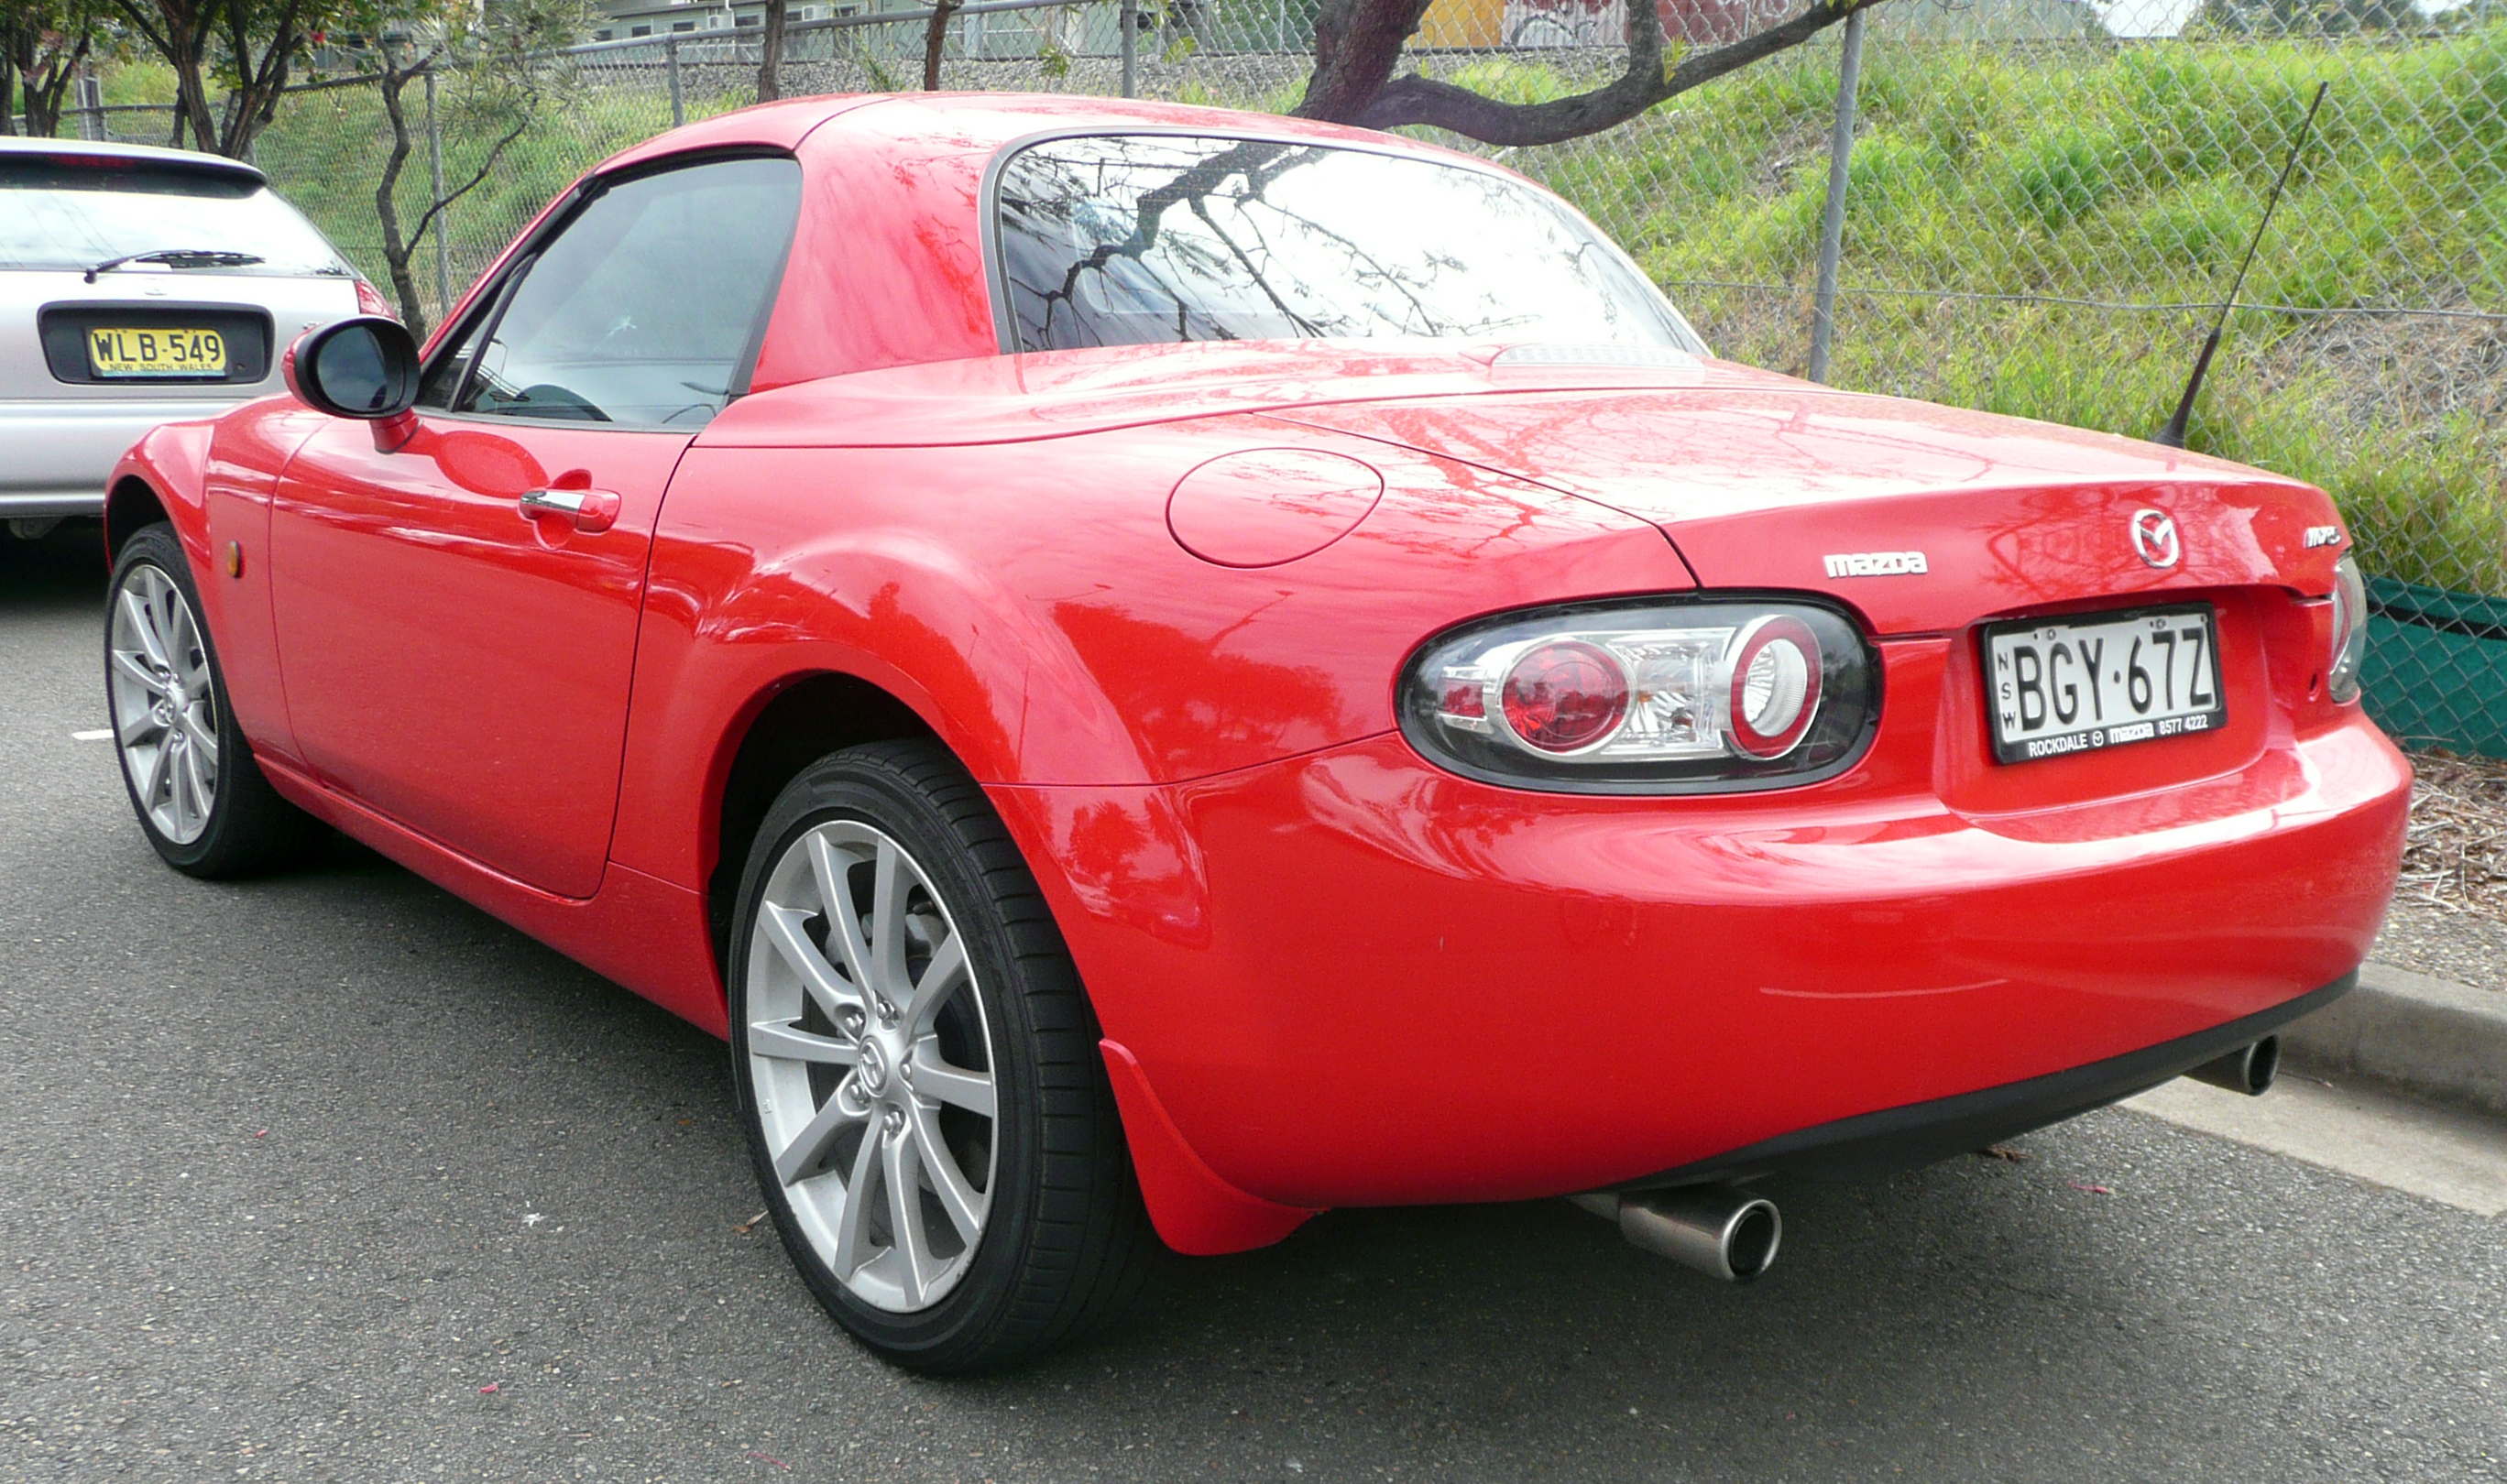 https://upload.wikimedia.org/wikipedia/commons/3/36/2005-2009_Mazda_MX-5_%28NC_Series_1%29_hardtop_03.jpg